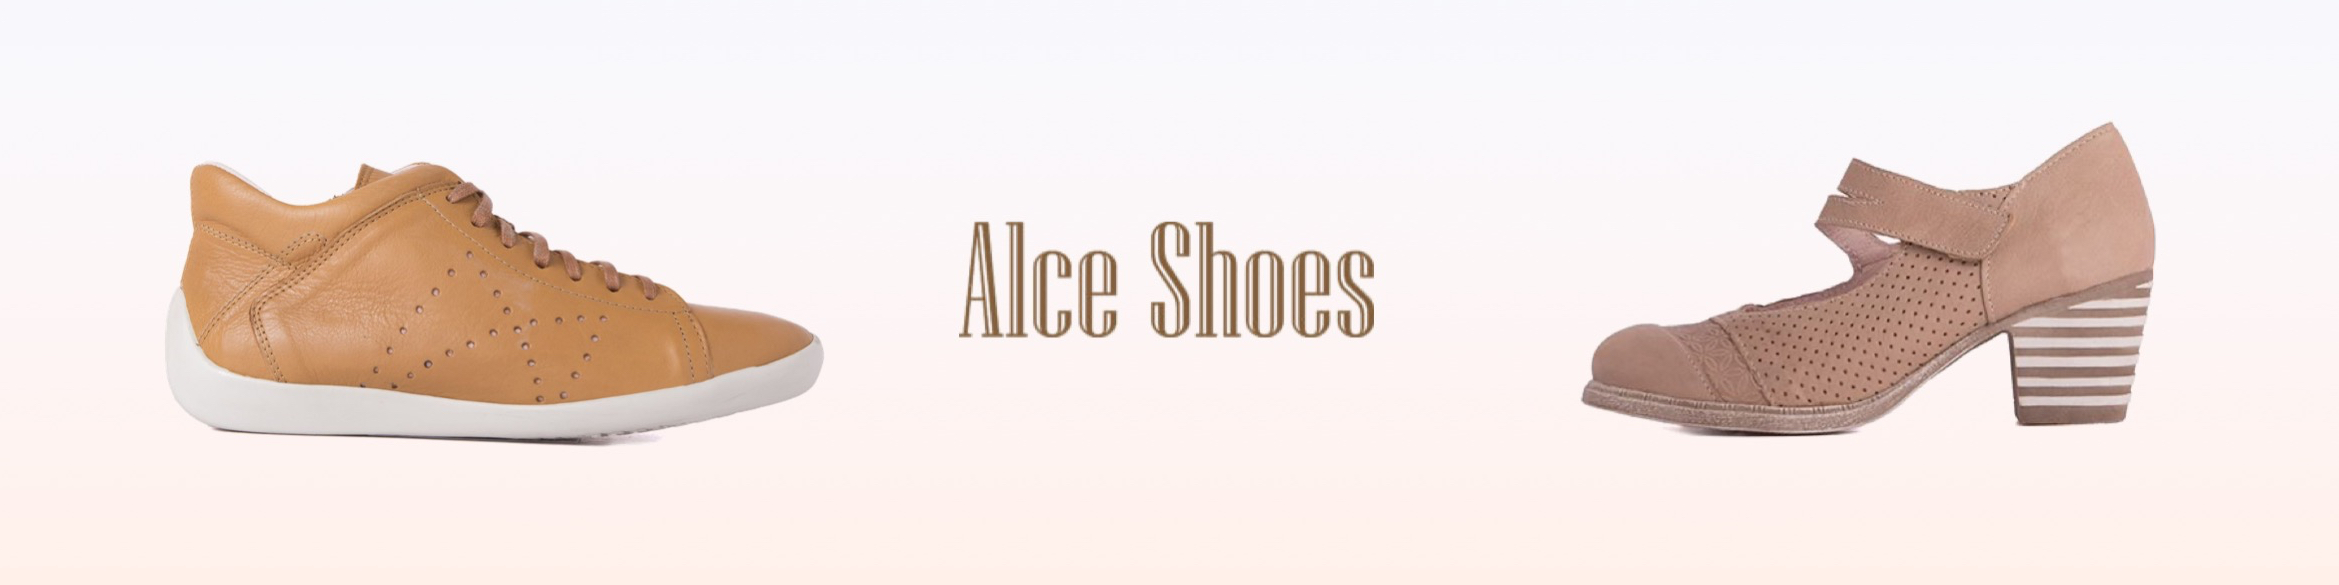 Alceshoes